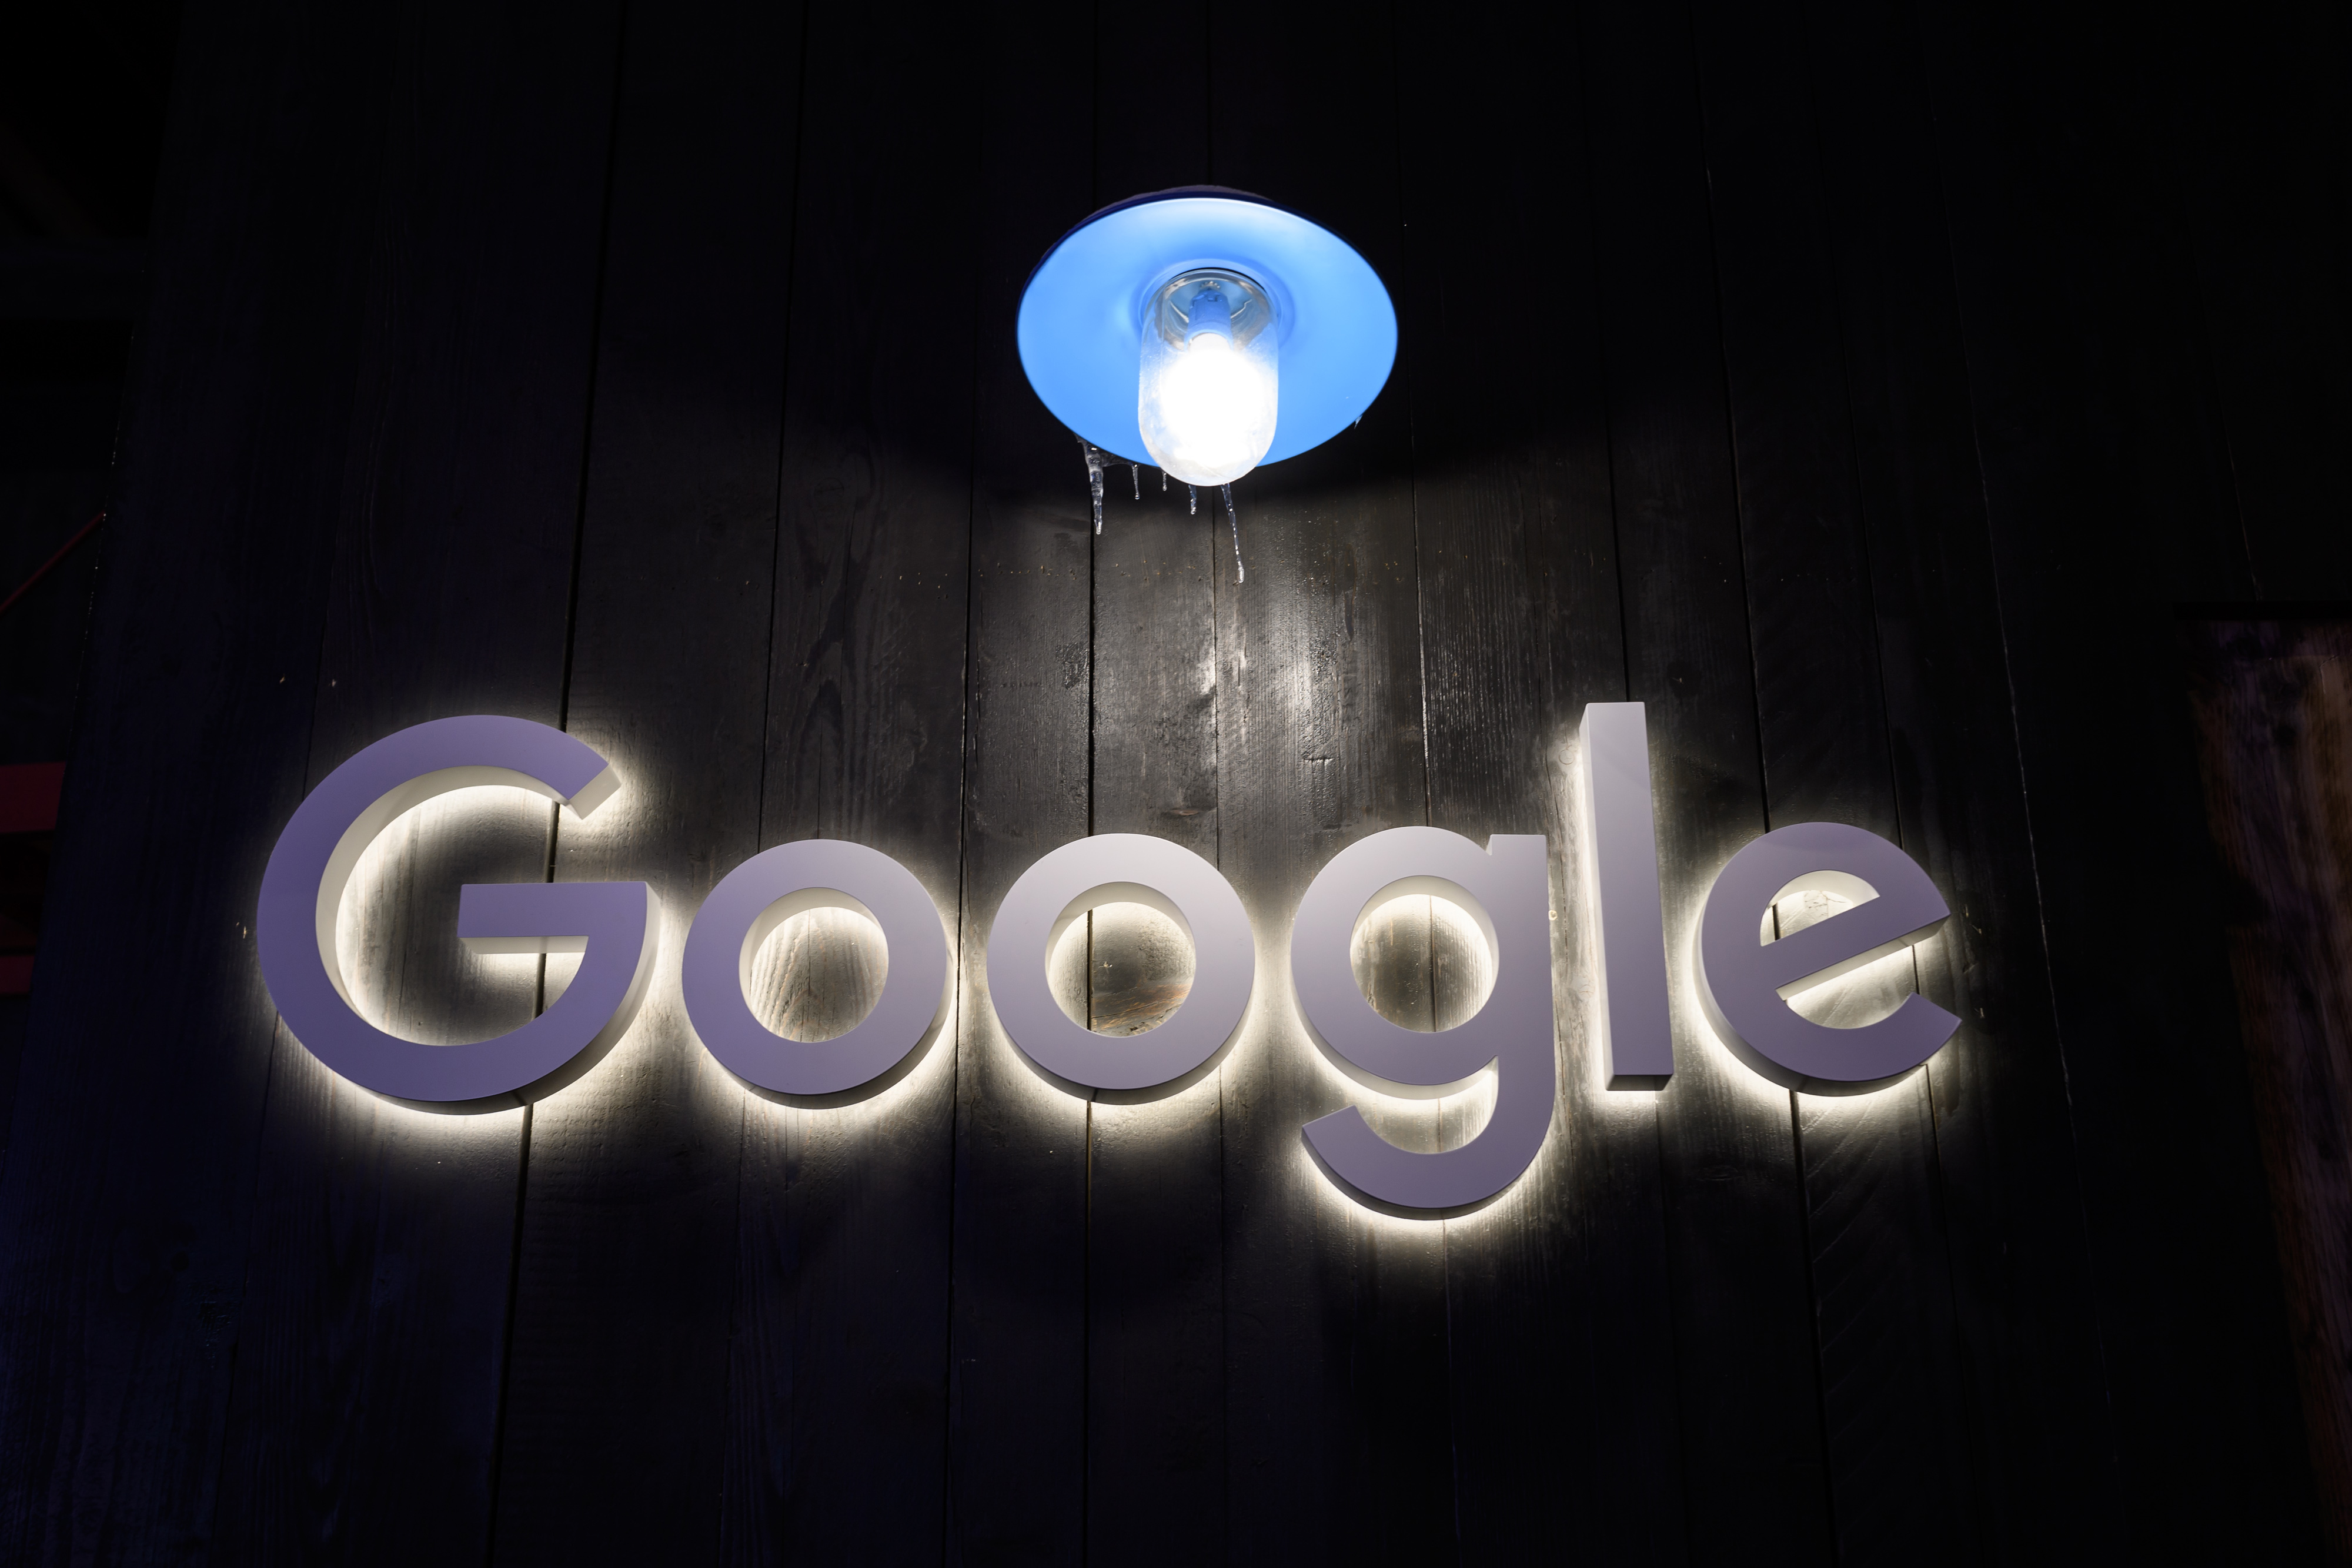 Google logo with a spotlight over it.